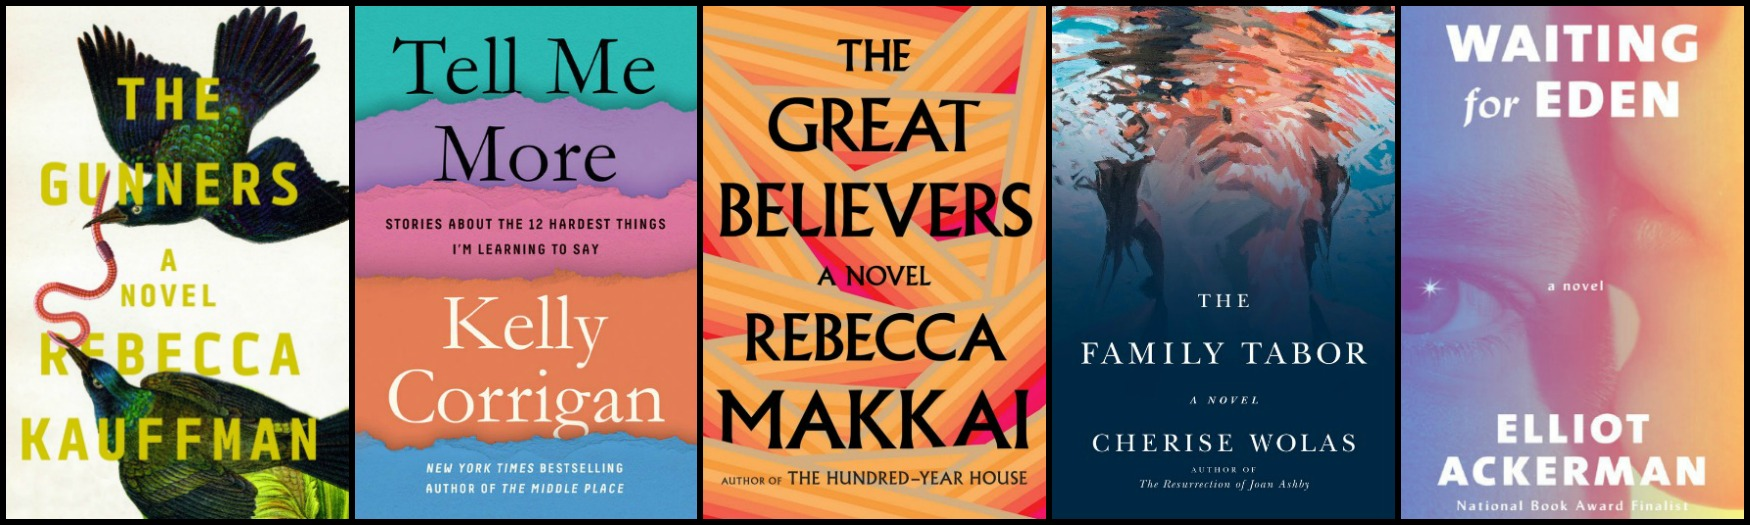 Novel Visits' New-to-Me Authors for 2018: Authors I'm Eager to Read More From- Rebecca Kaufman's The Gunners, Kelly Corrigan's Tell Me More, Rebecca Makkai's The Great Believers, Cherise Wolas's The Family Tabor and Elliot Ackerman's Waiting for Eden